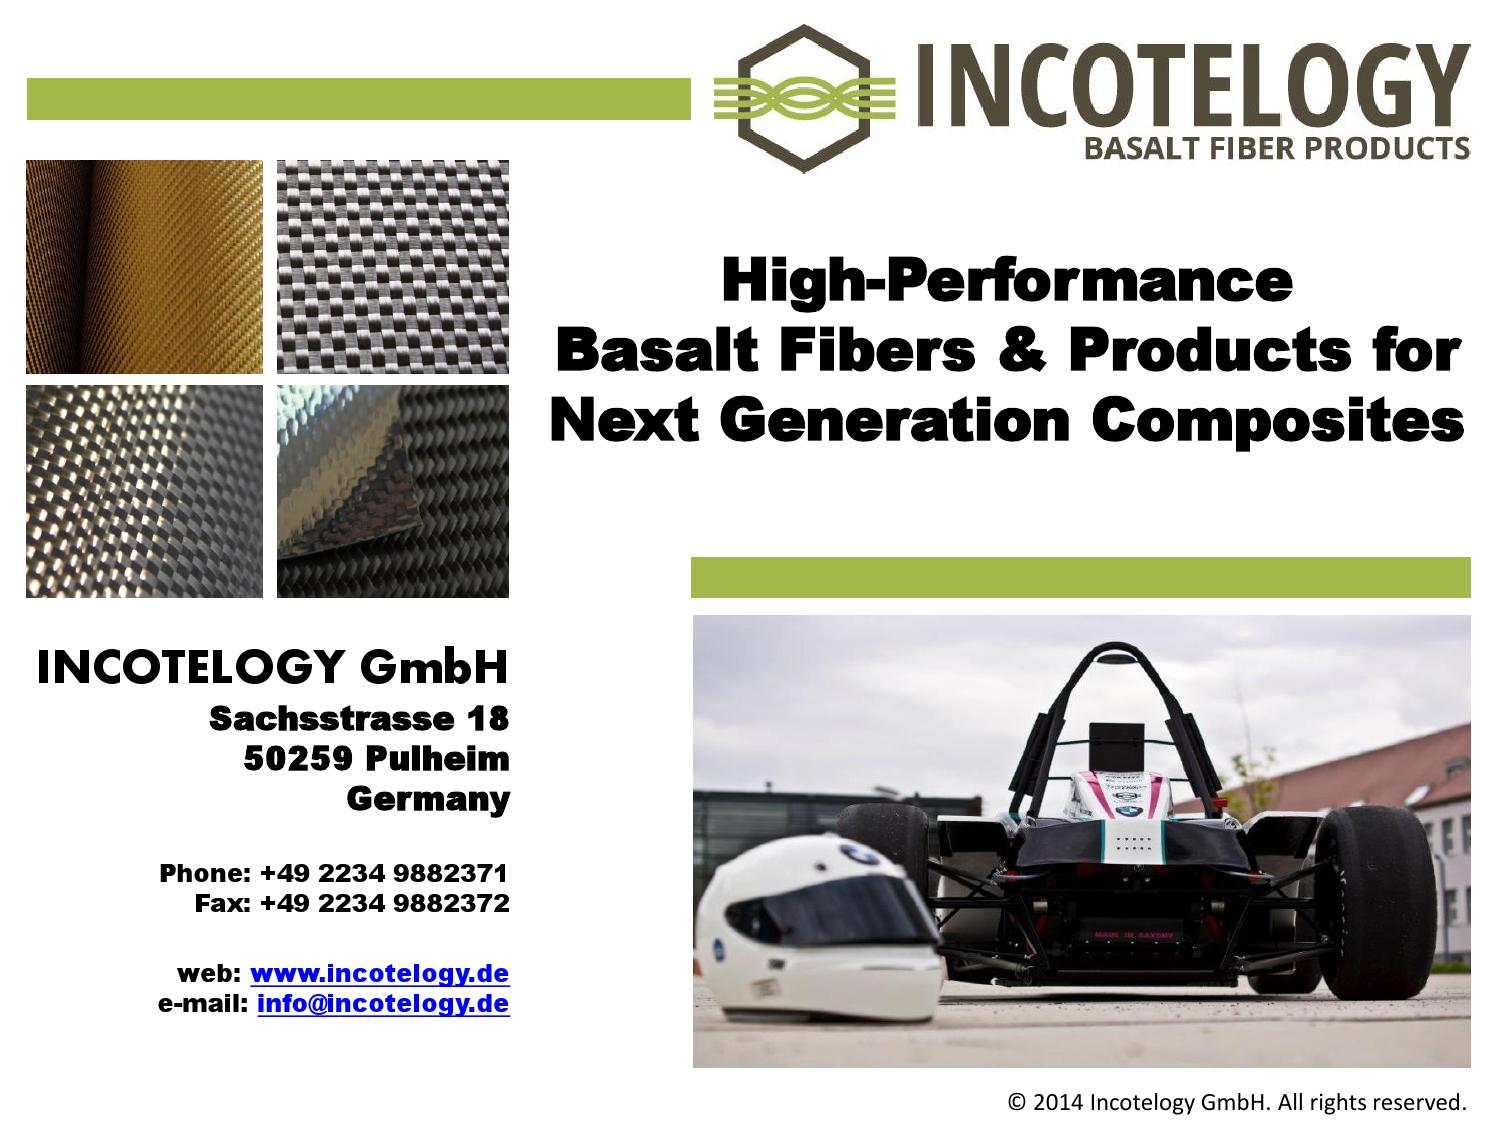 High performance basalt fibers & products for next